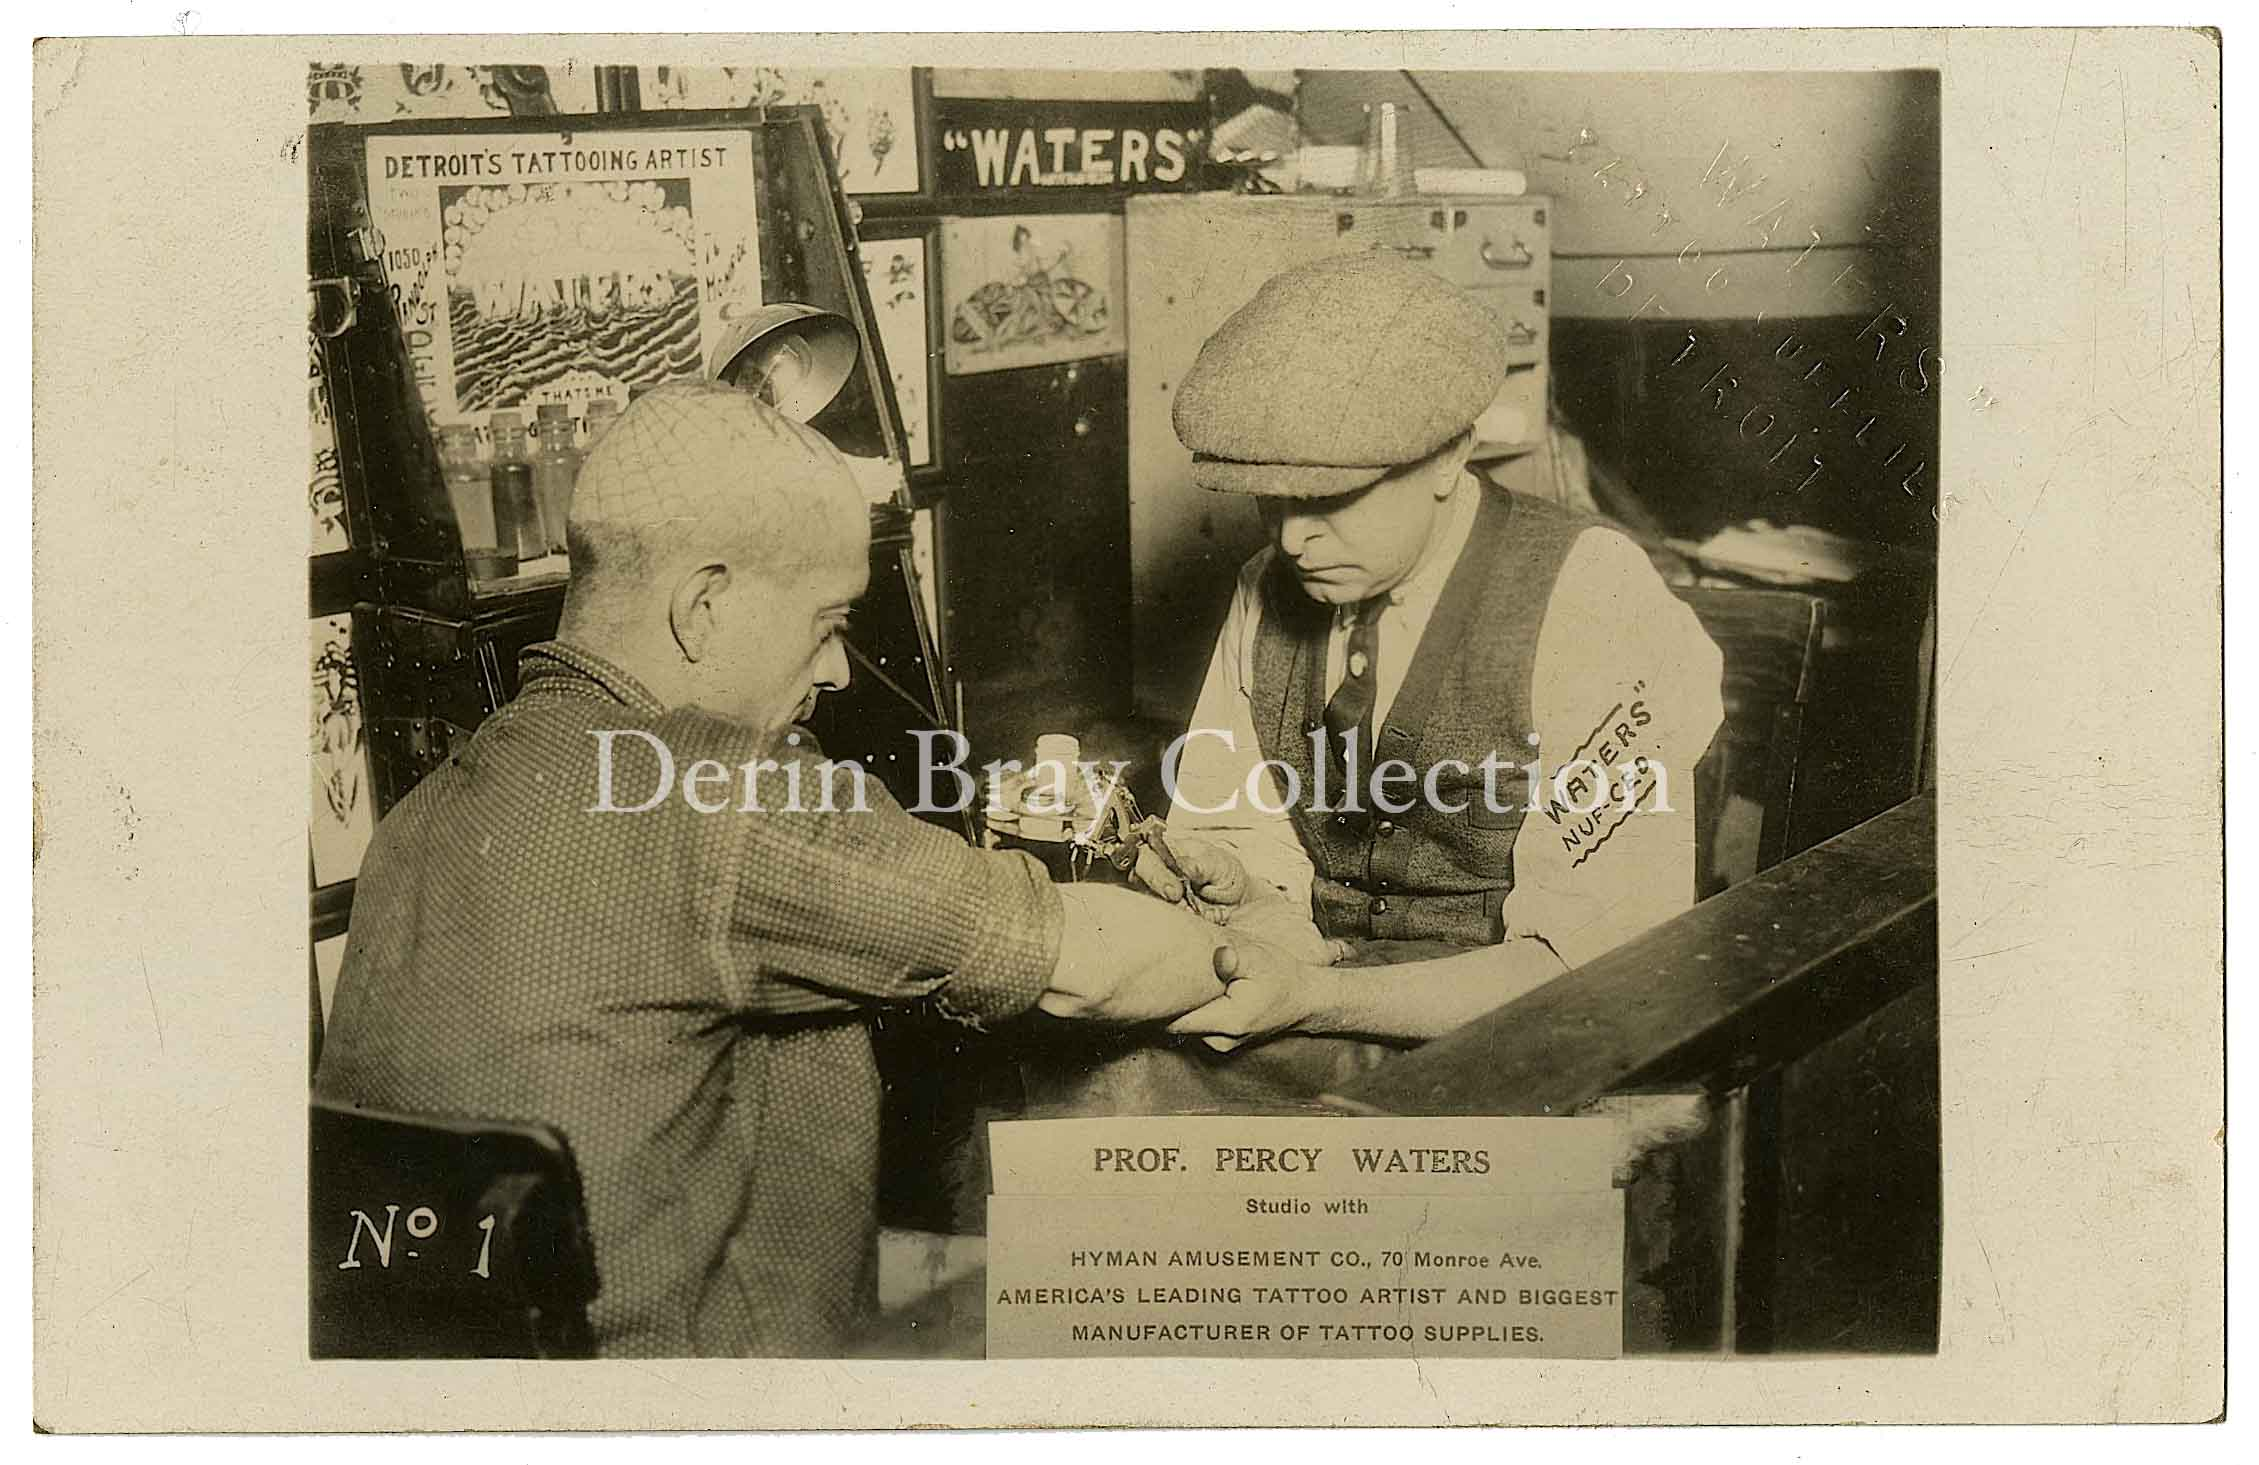 Percy Waters tattooing Ed Van, photo postcard, Detroit, ca. 1925.  Derin Bray Collection